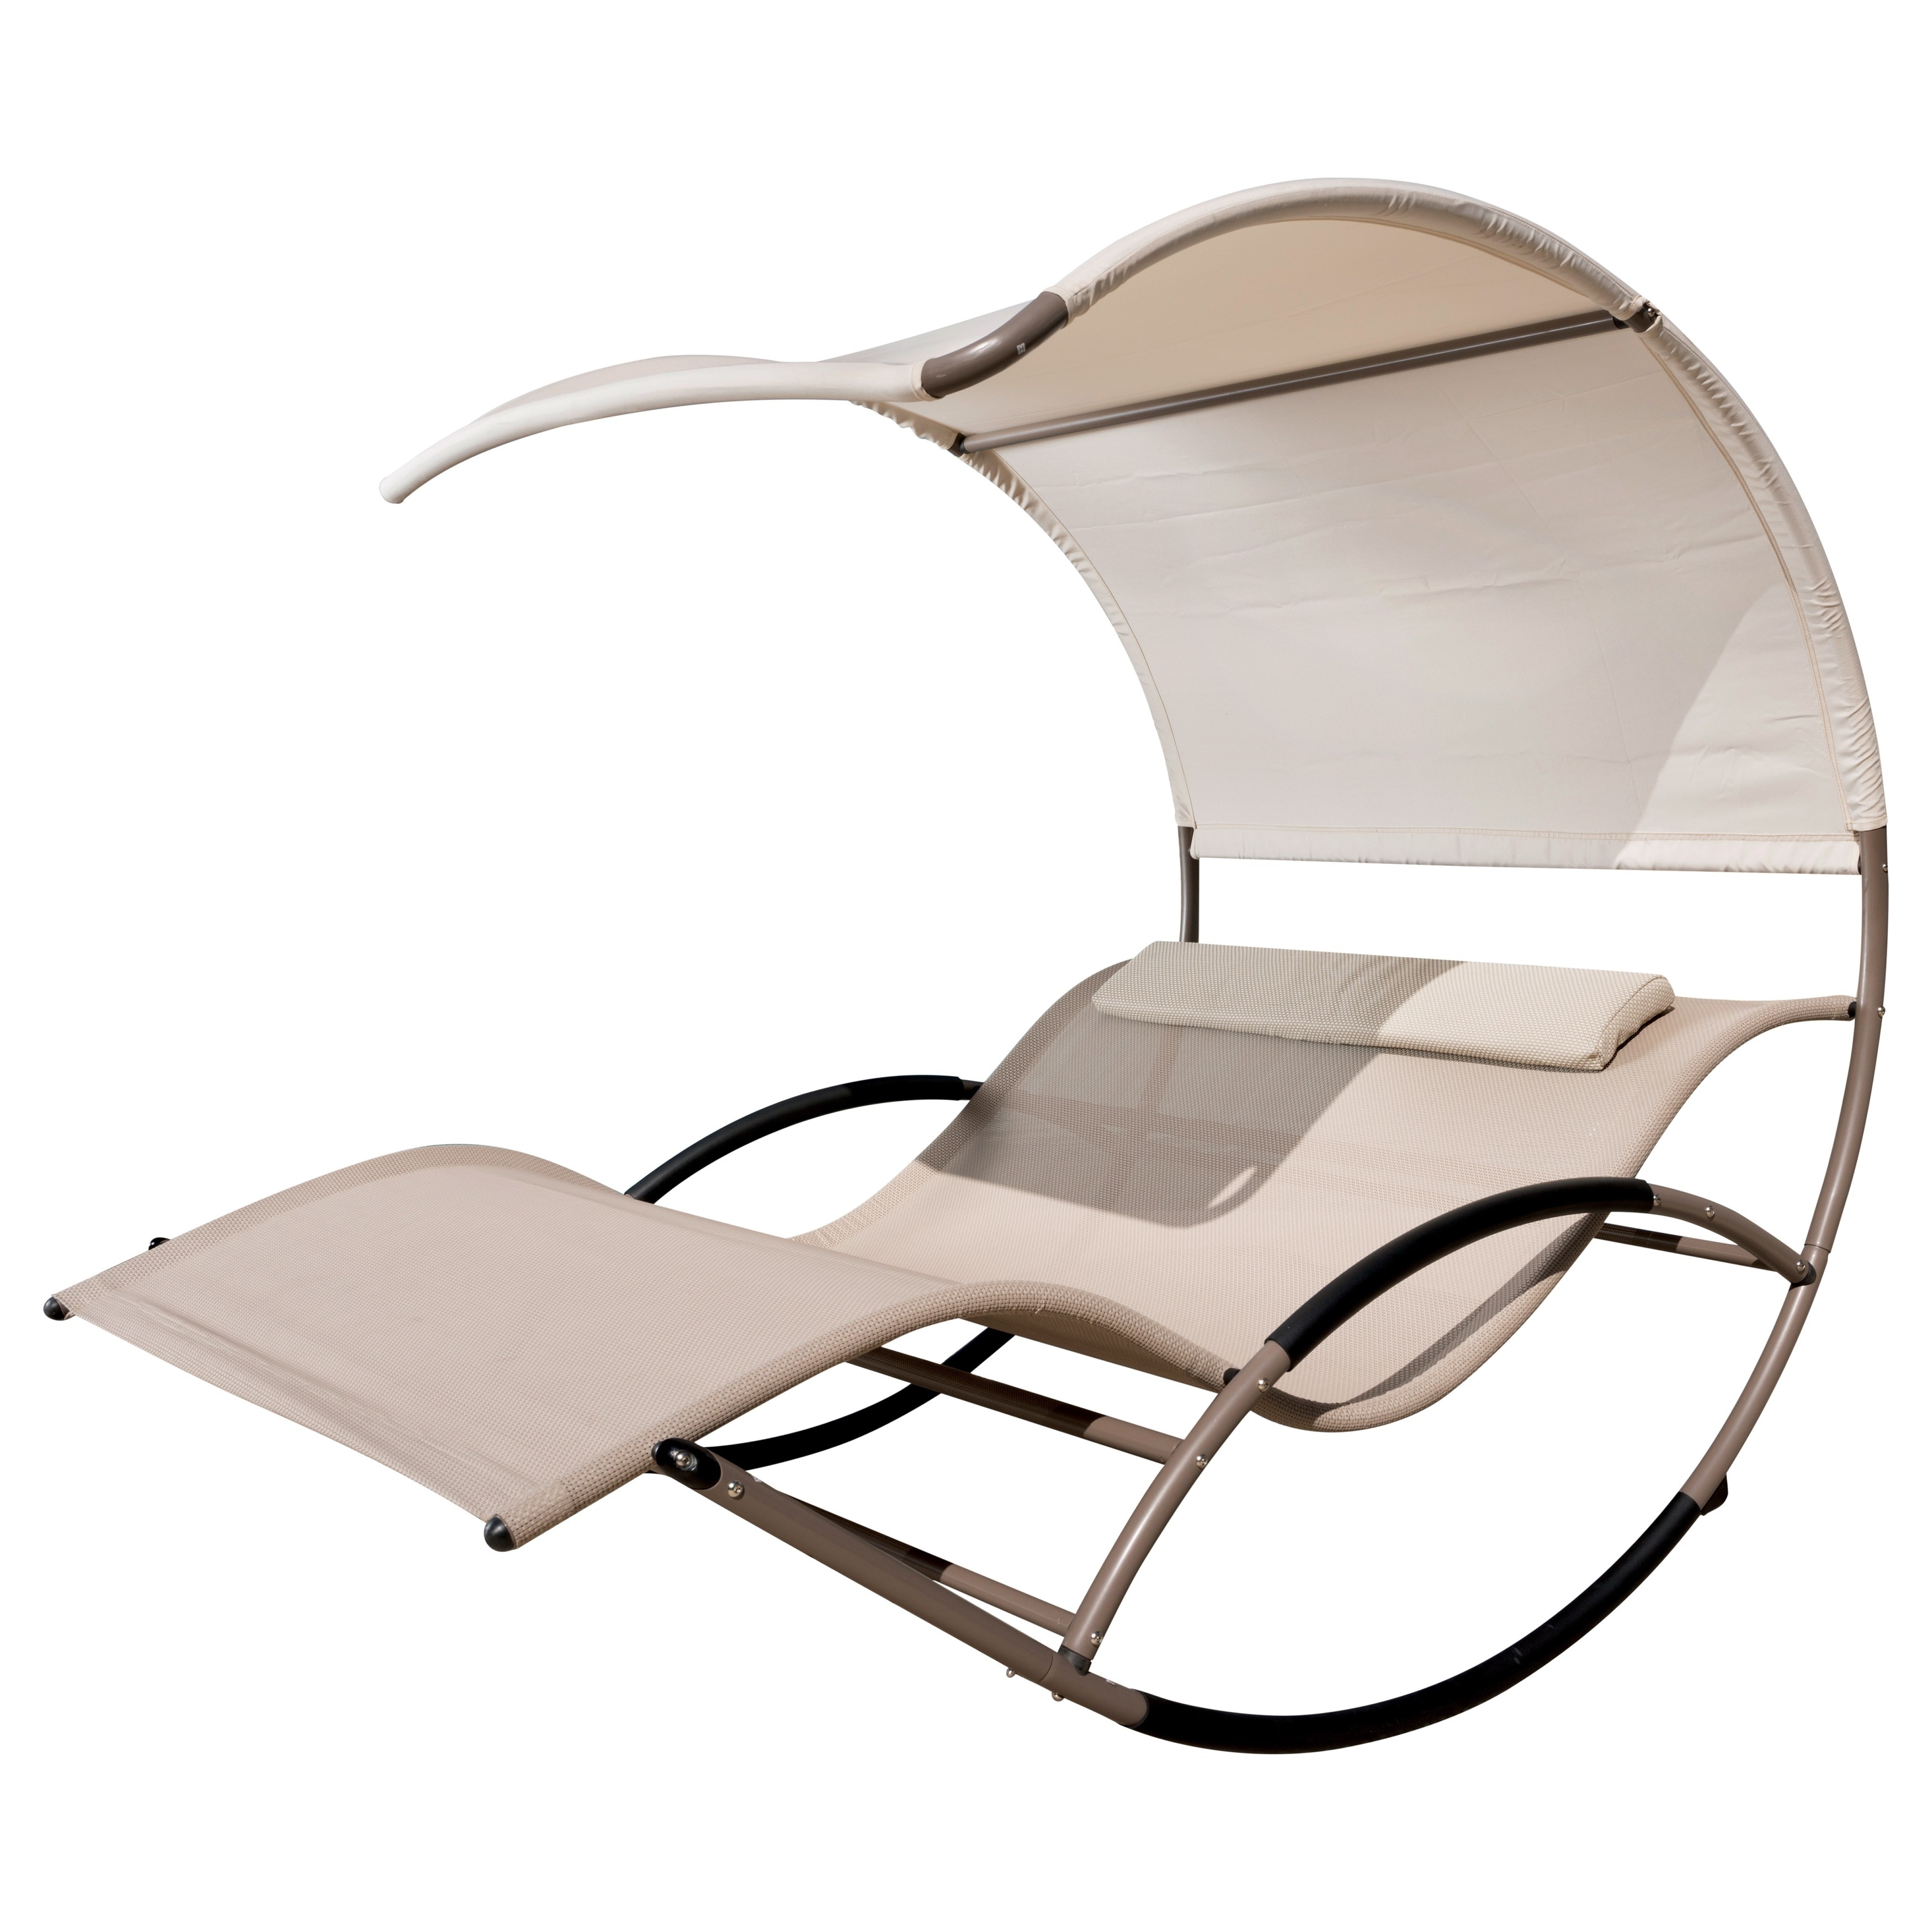 Double Rocking Chaise Lounge By Rst Brands Overstock